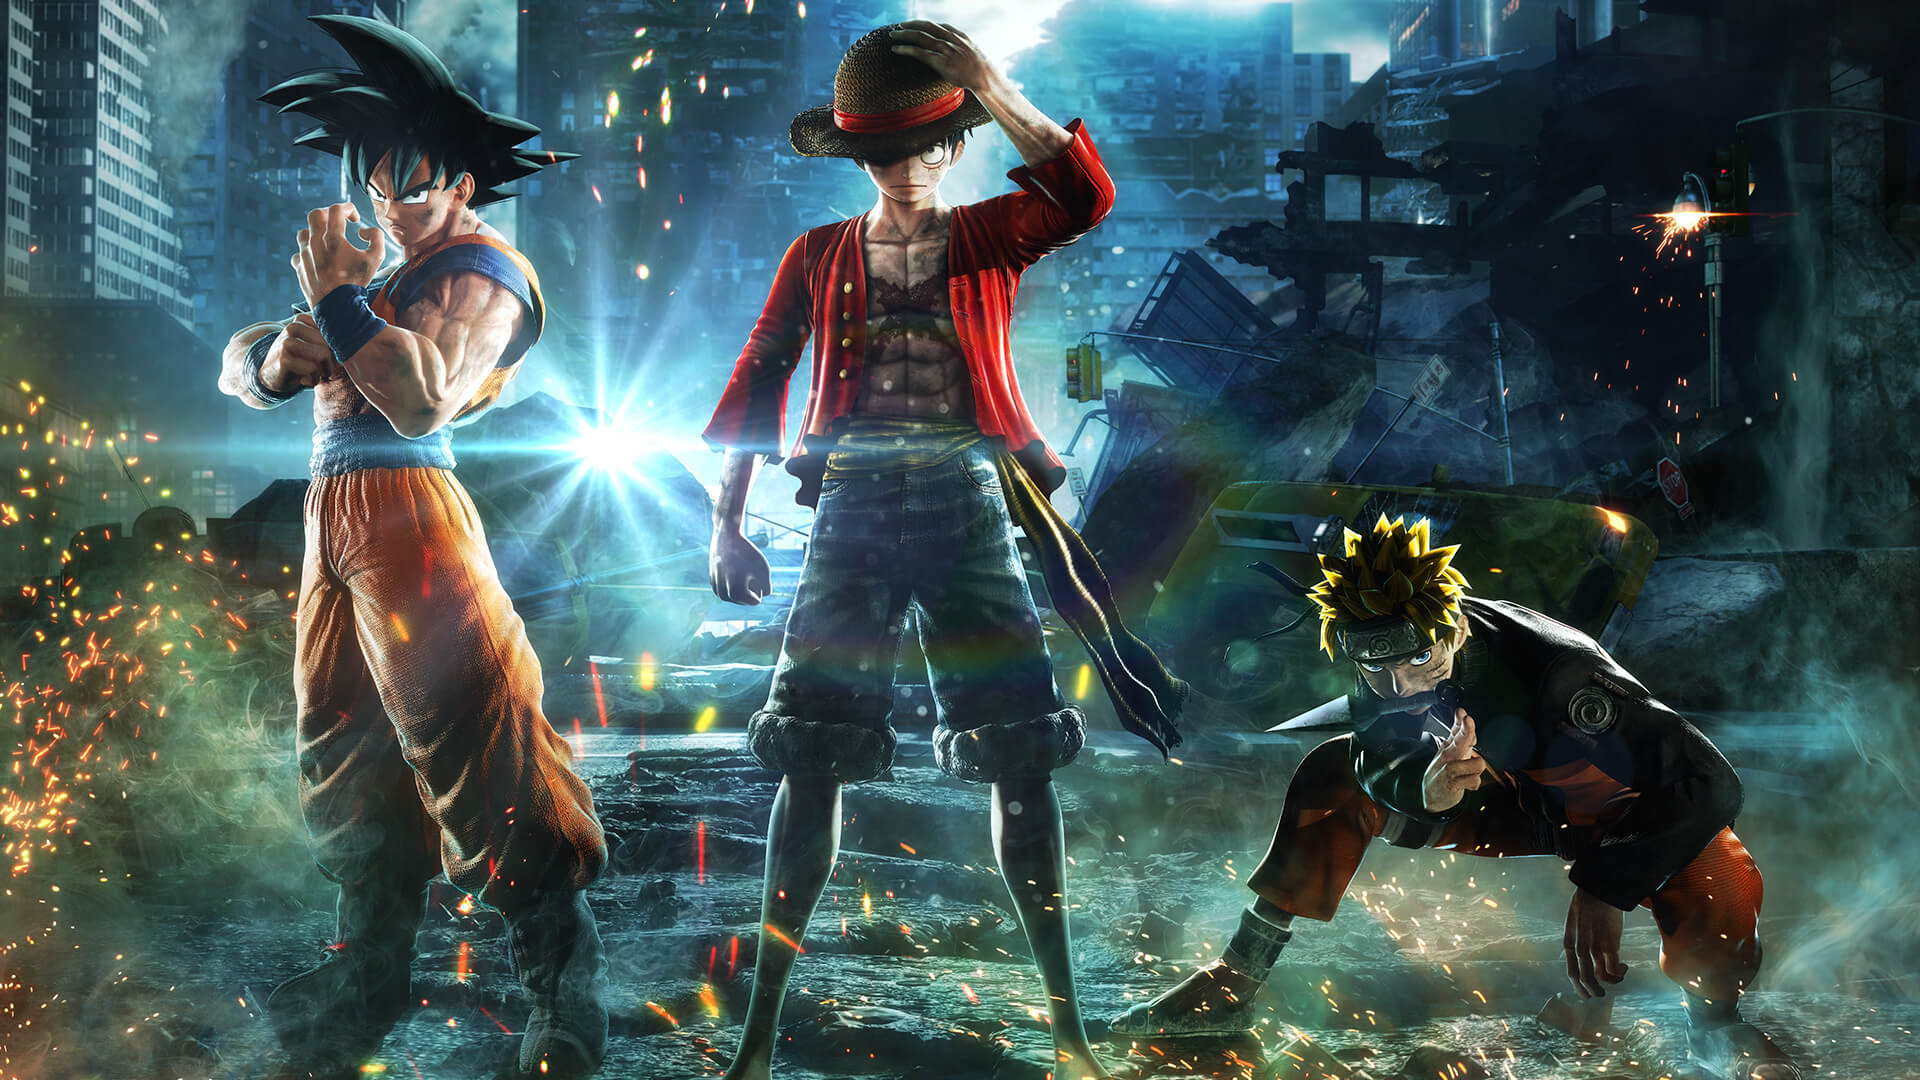 JUMP FORCE runs really smooth on the PC but suffers from console porting issues